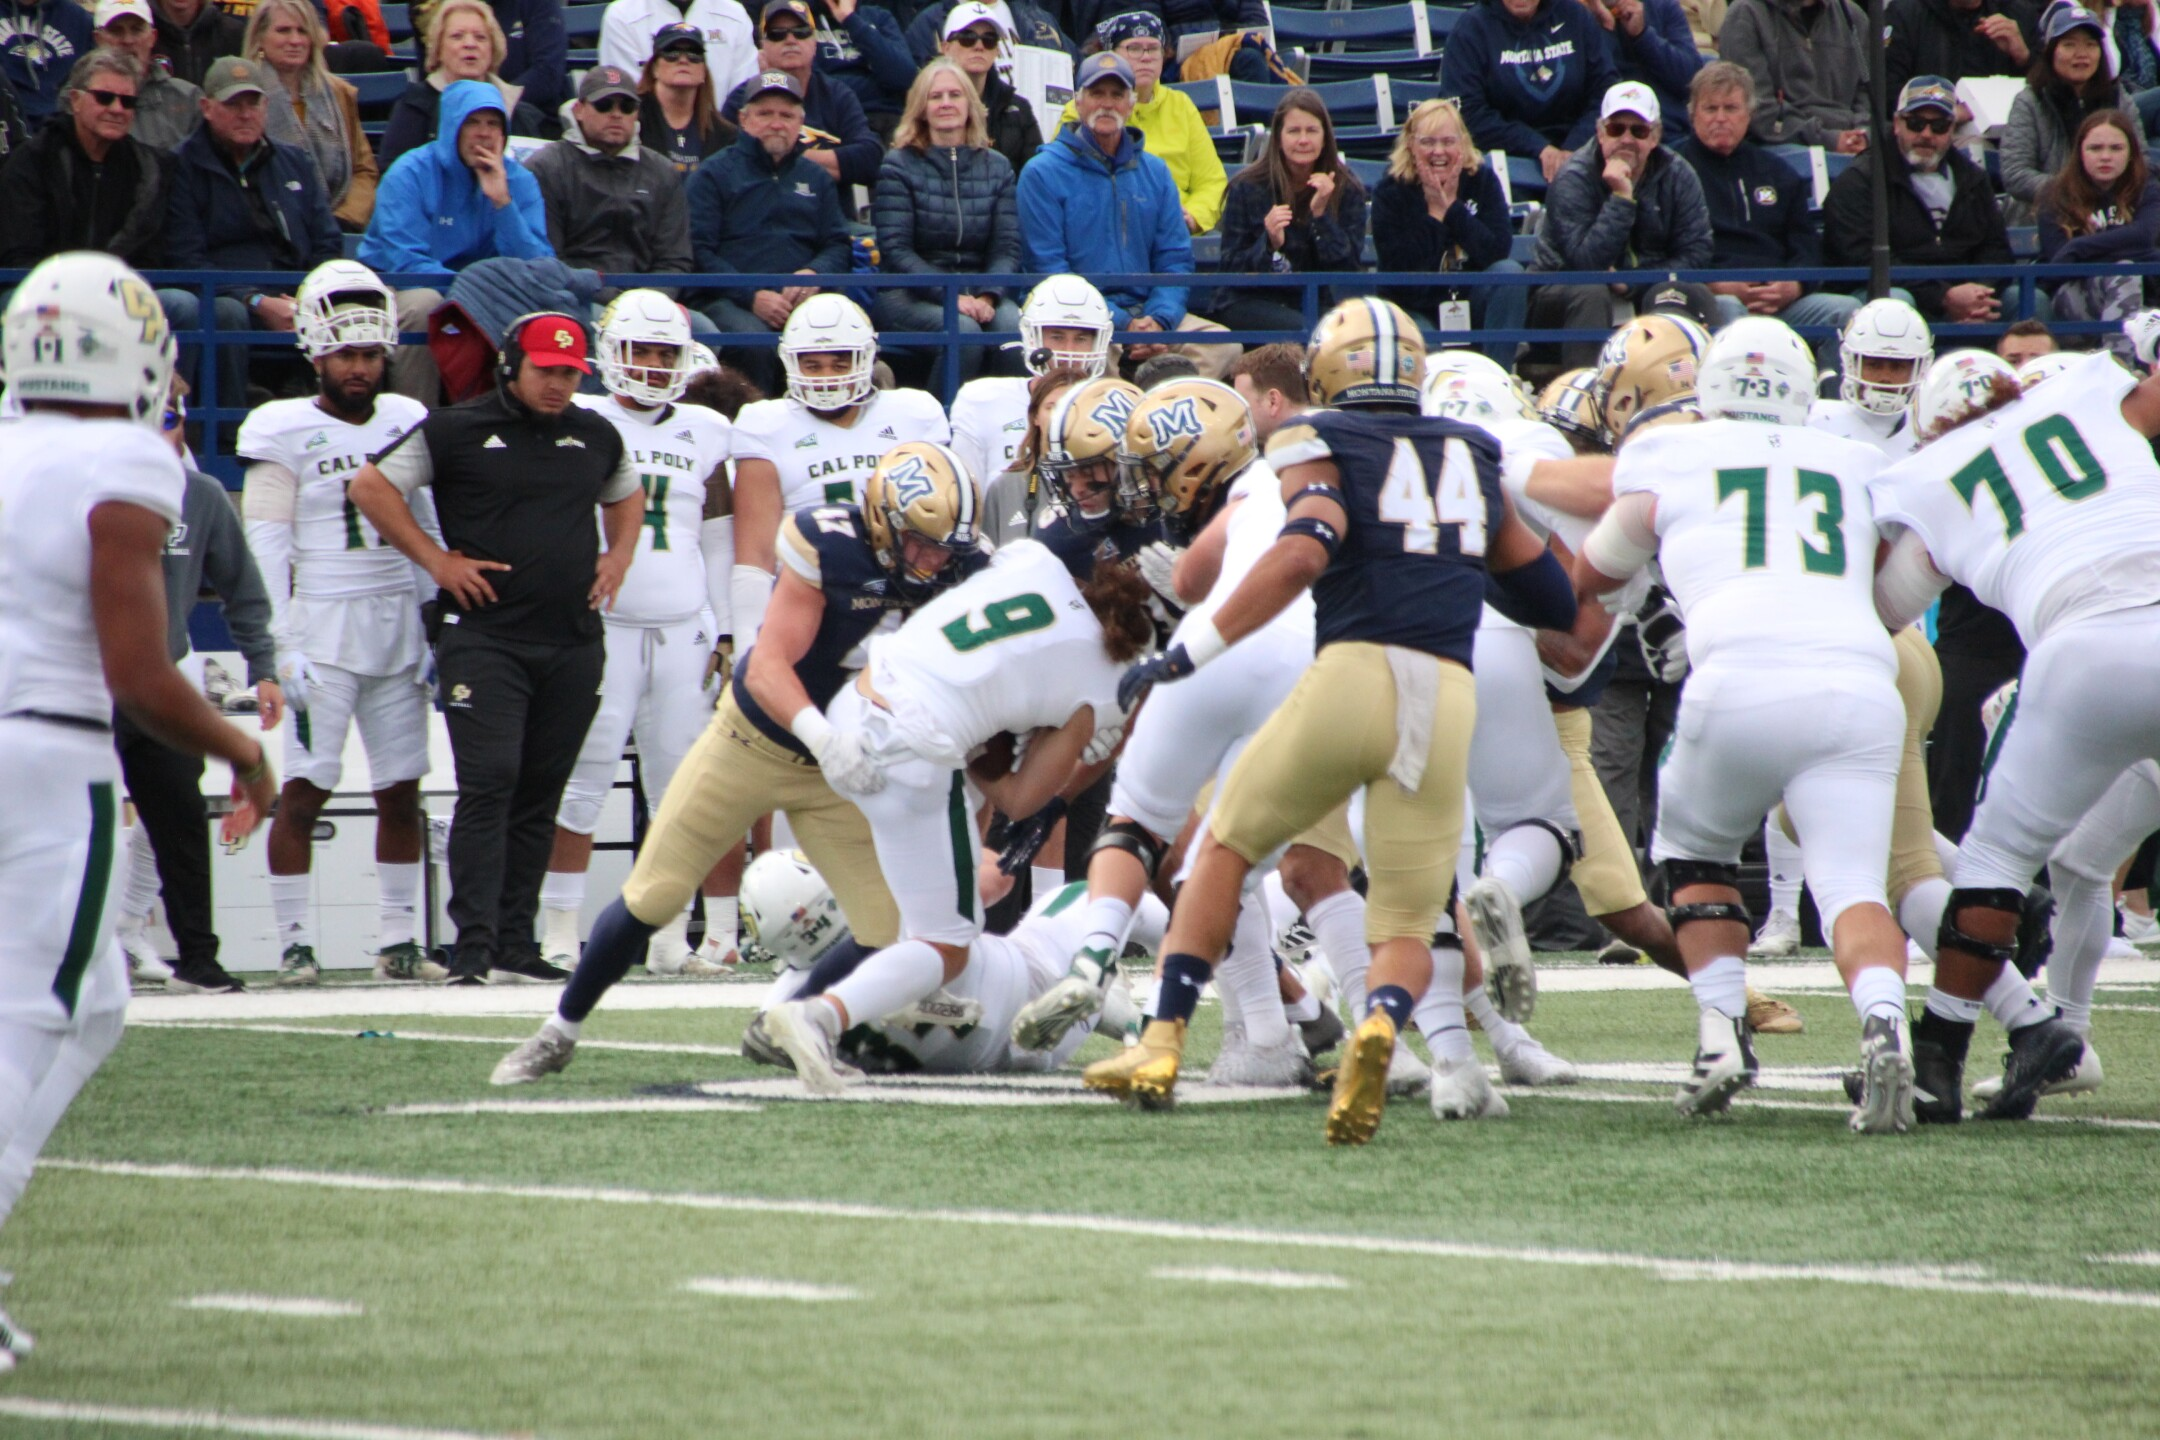 LB Callahan O'Reilly makes a tackle in the first half